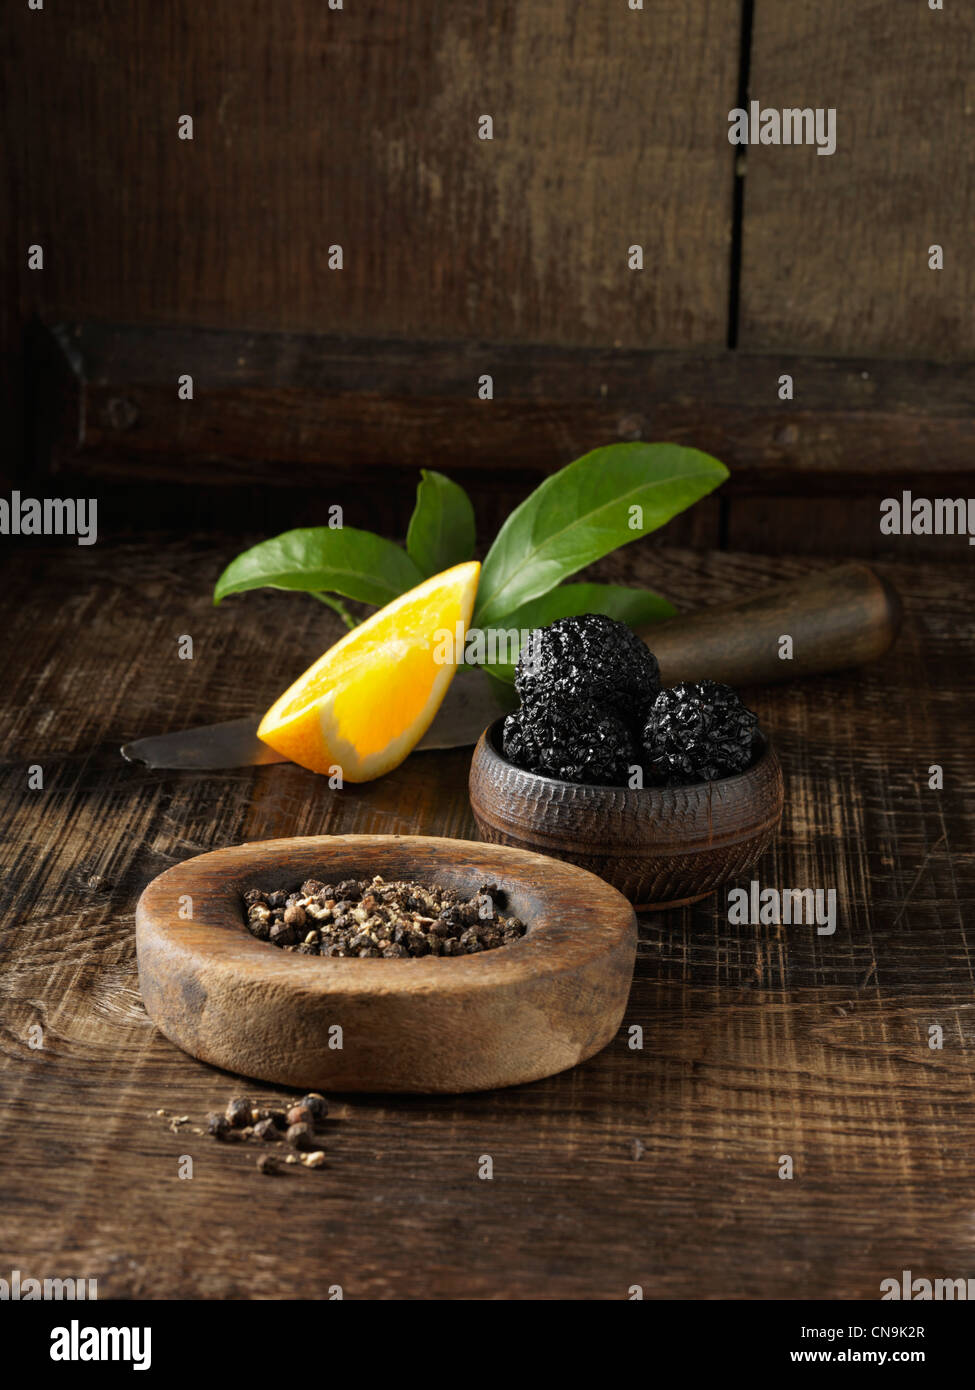 Black truffles, peppercorns and orange - Stock Image